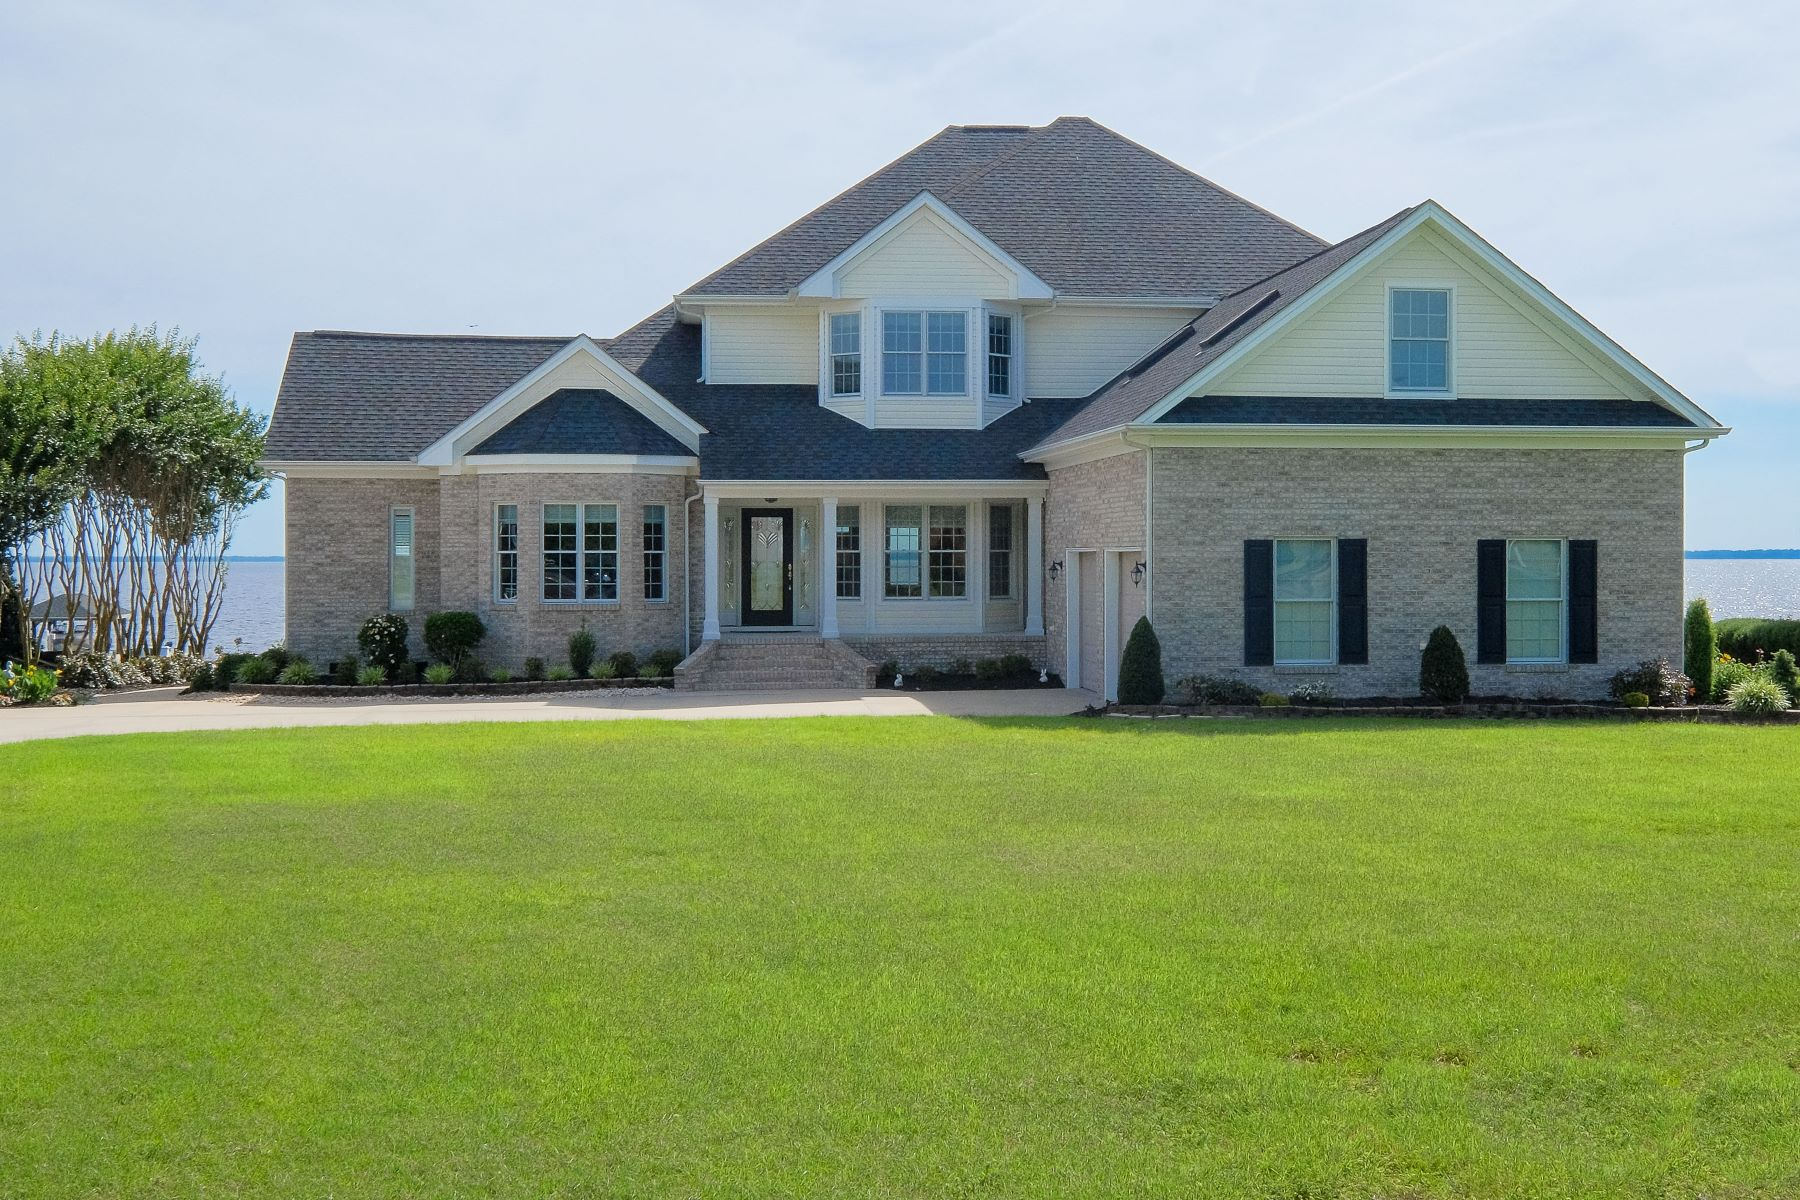 Single Family Home for Sale at PRISTINE WATERFRONT 358 Bay Point Dr, Edenton, North Carolina, 27932 United States